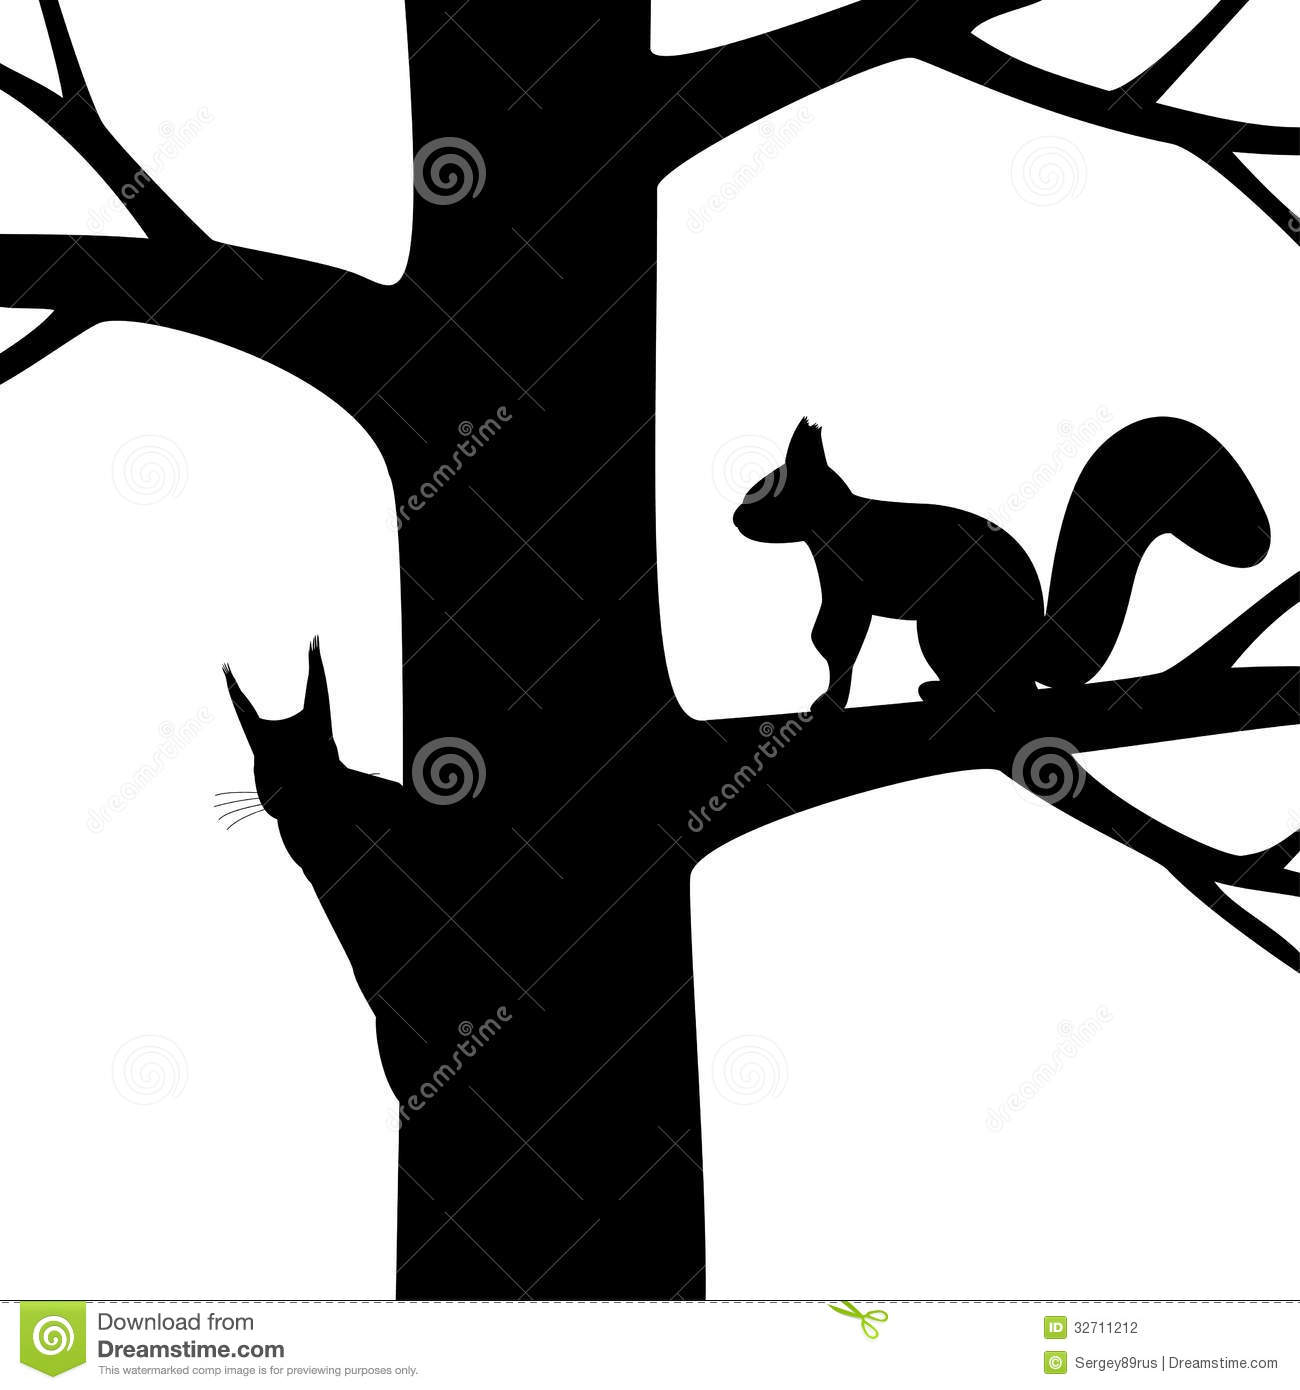 Squirrel Outline Clip Art Two squirrel on the tree.